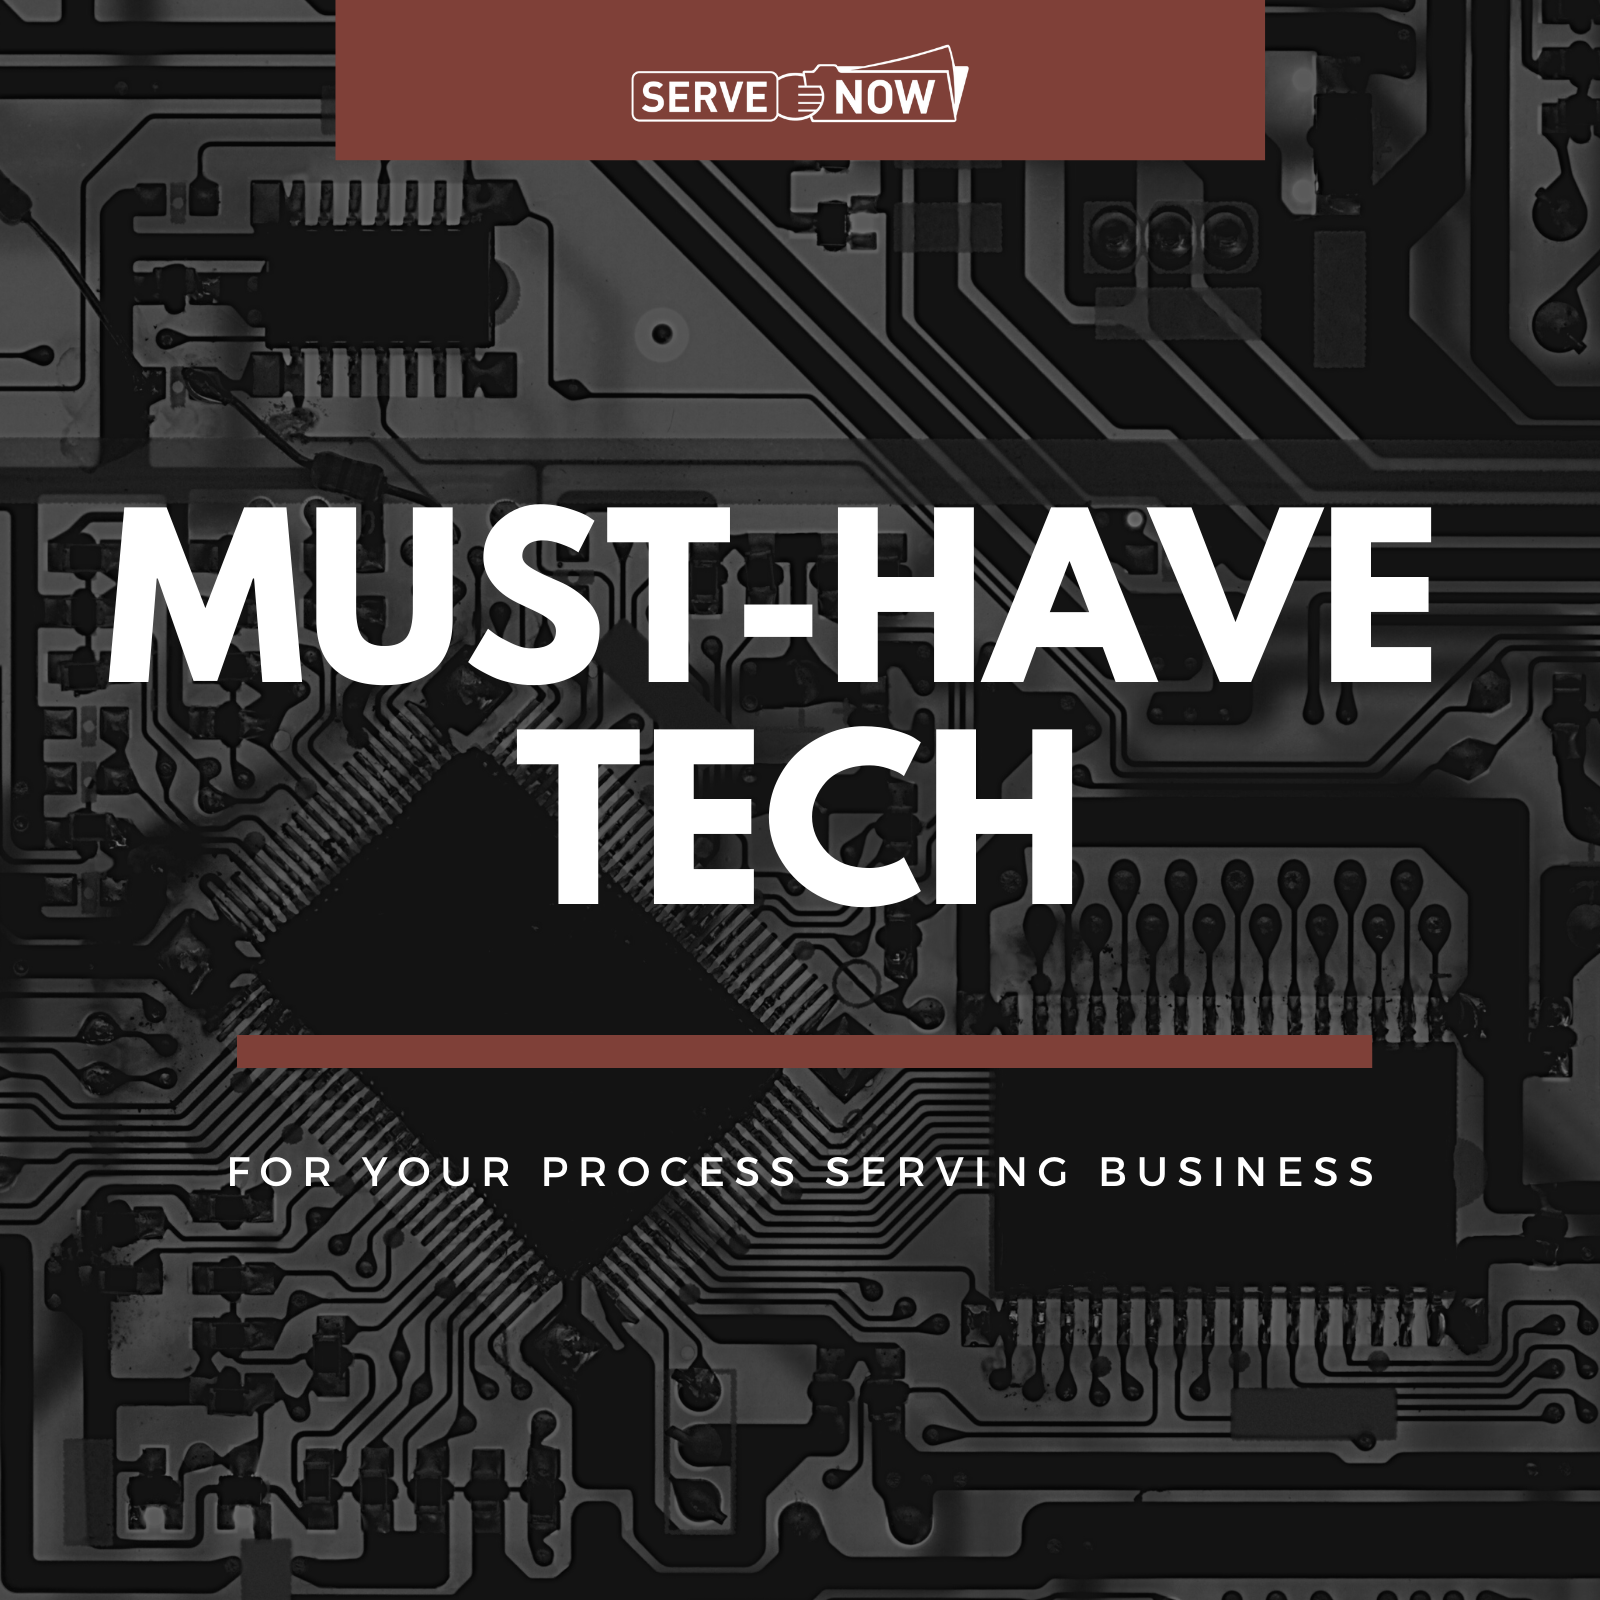 Must-Have Tech for Process Serving Business